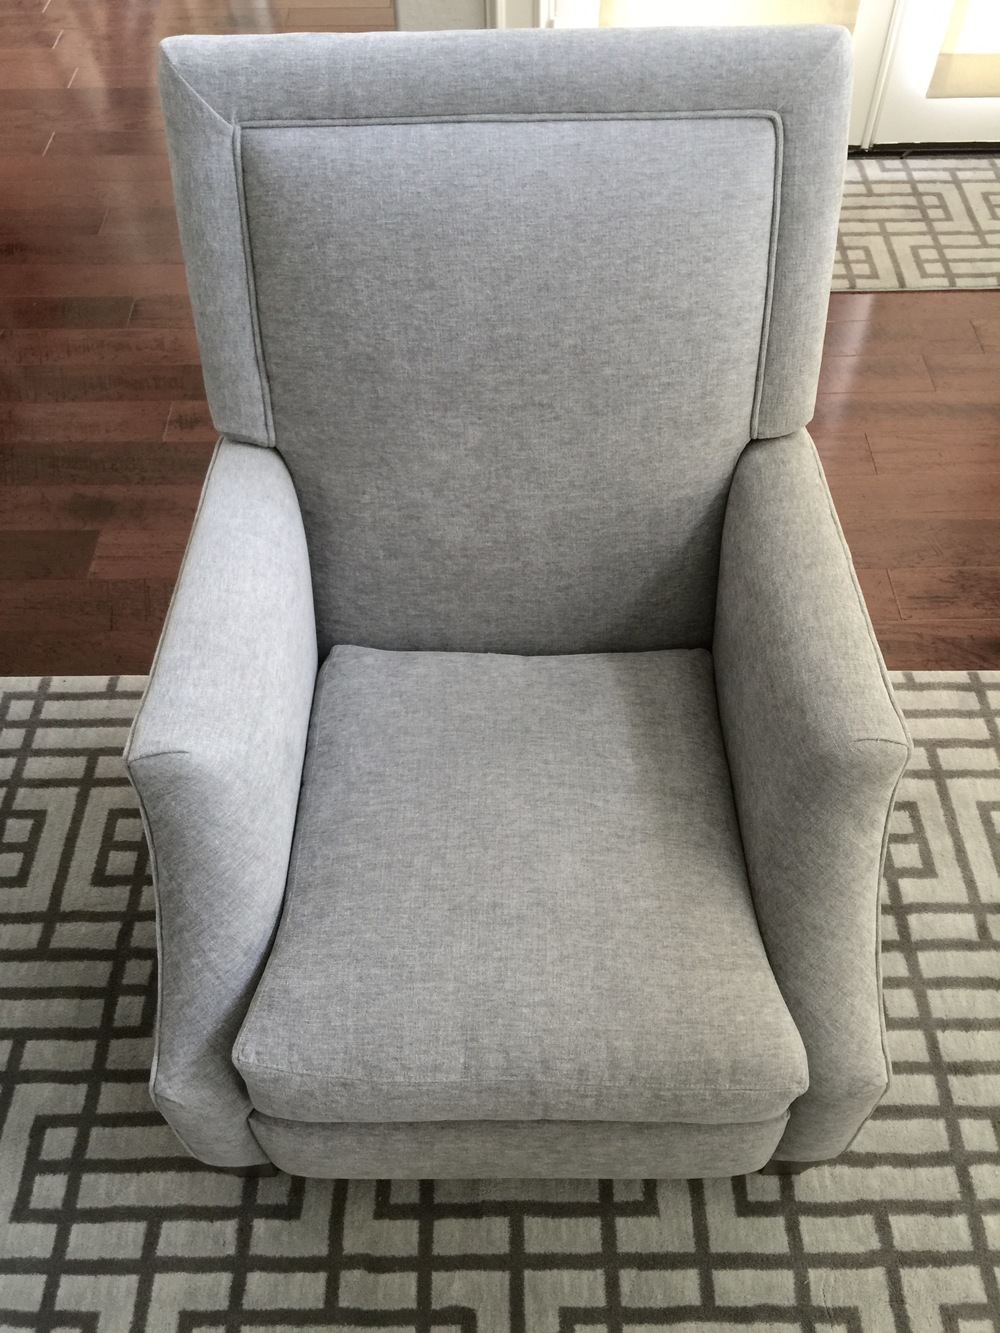 Recliner - Lee Industries in indoor-outdoor fabric